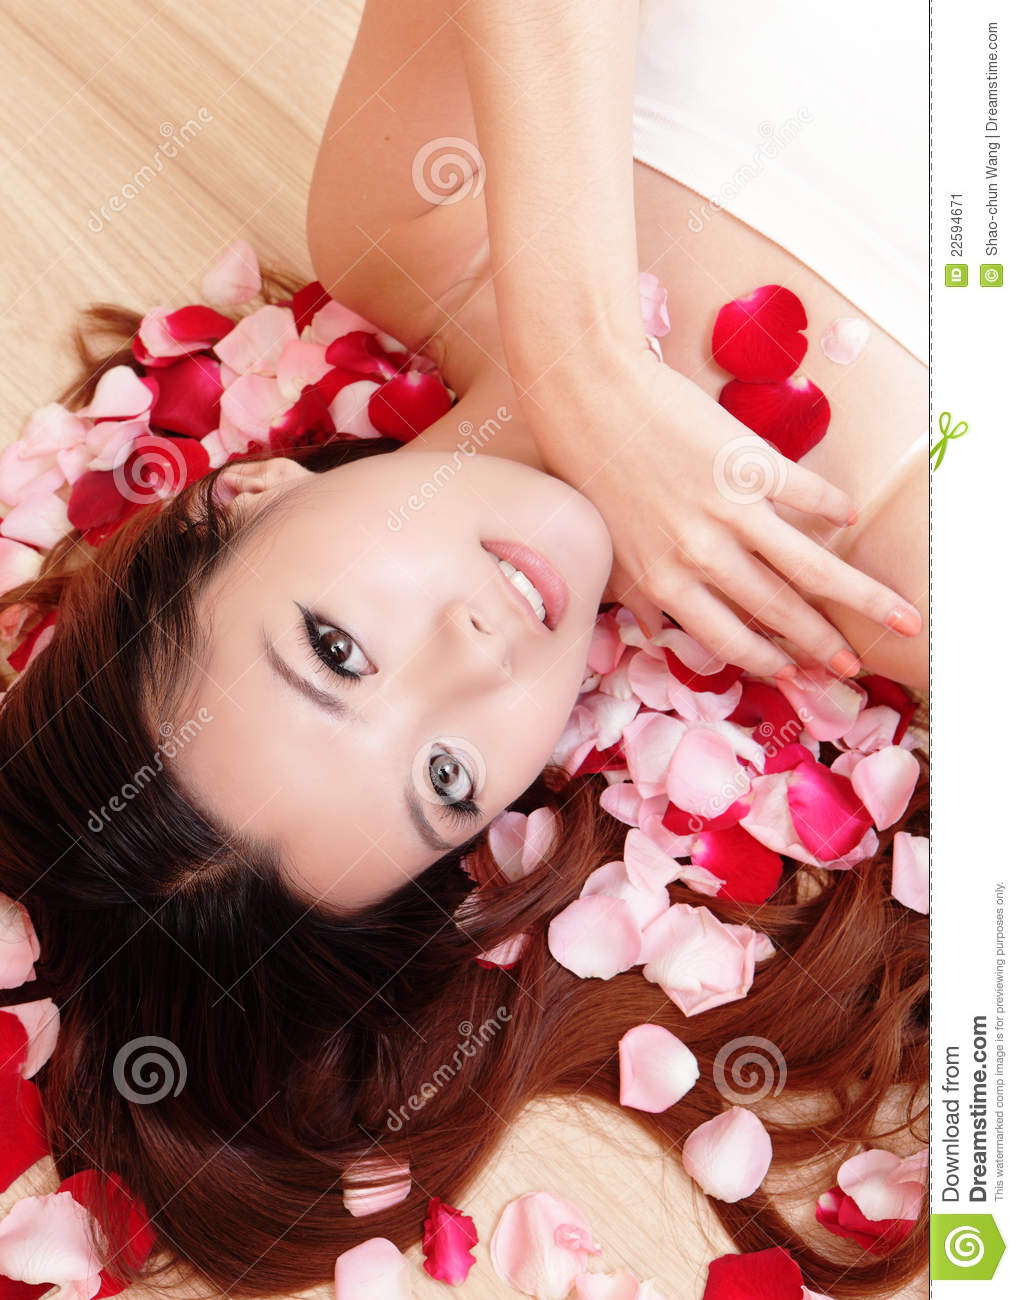 Asian beauty Girl smiling close-up with rose